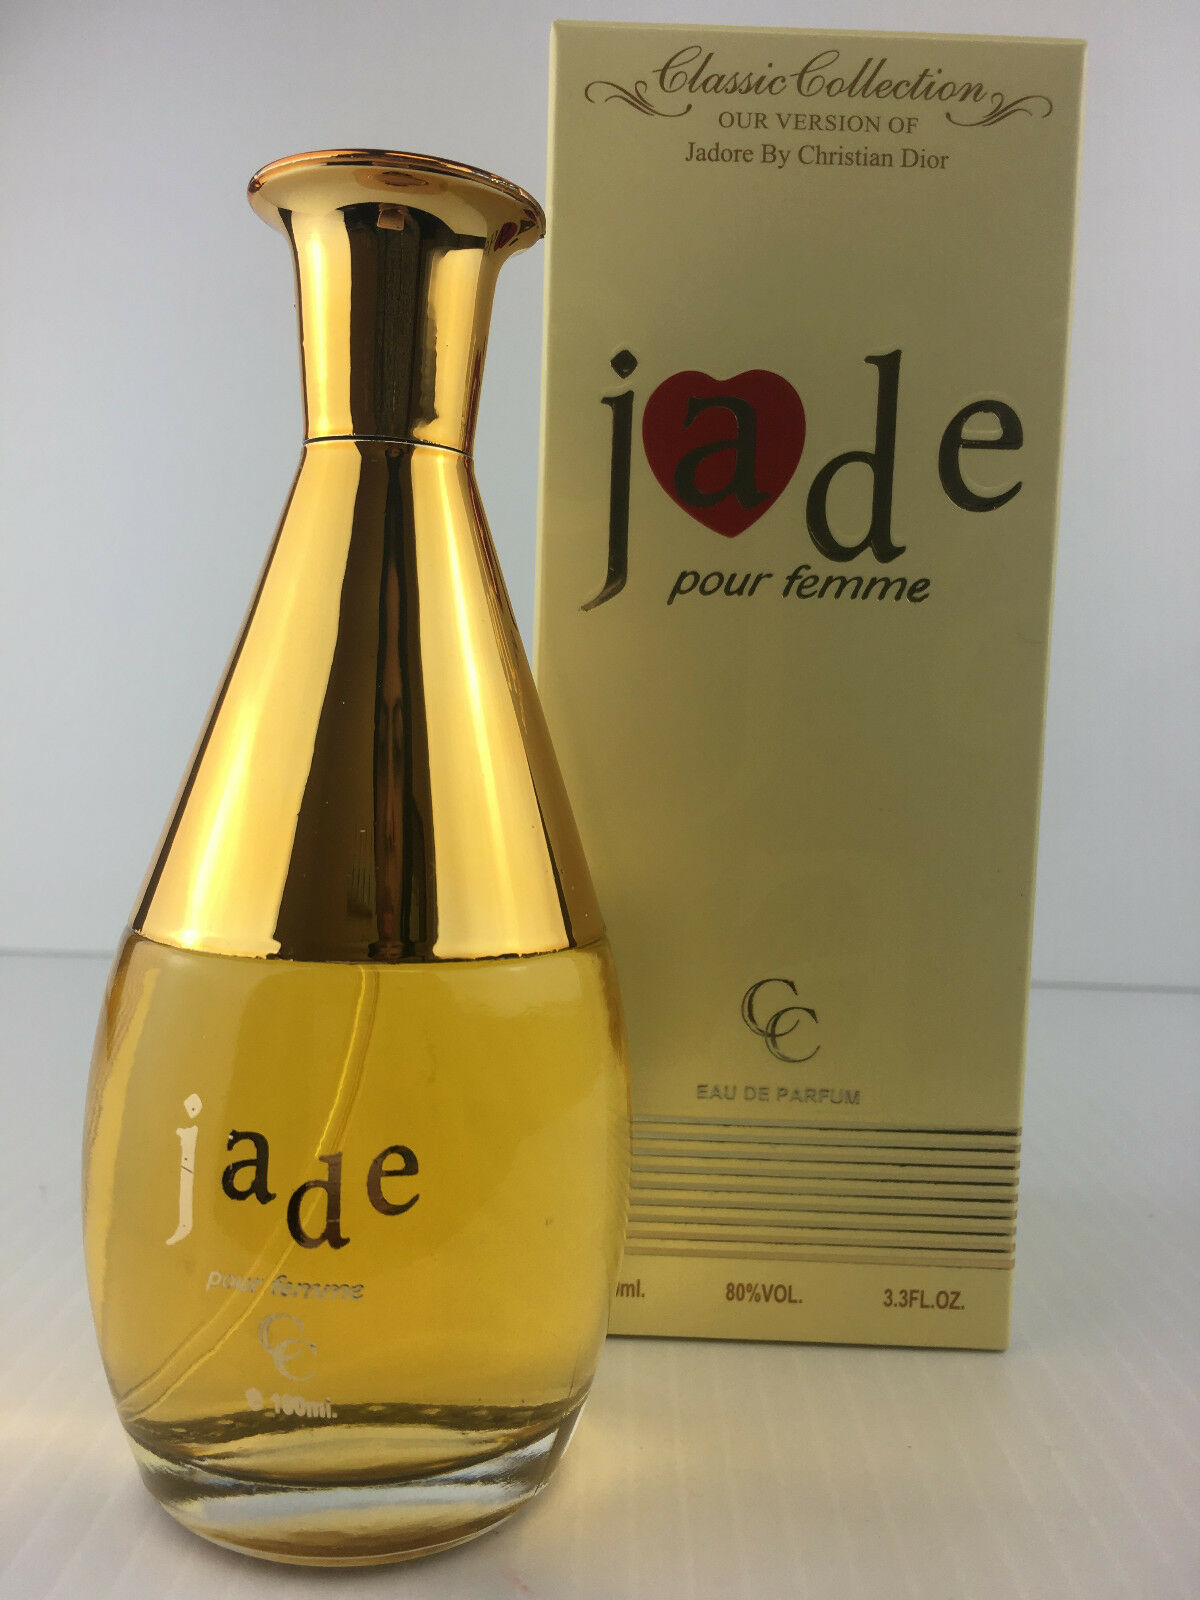 Spray Jade Collection Jadore In By 100 Of Ml Details 3 Box Oz About 3 Classic Version New O0mN8nvwy